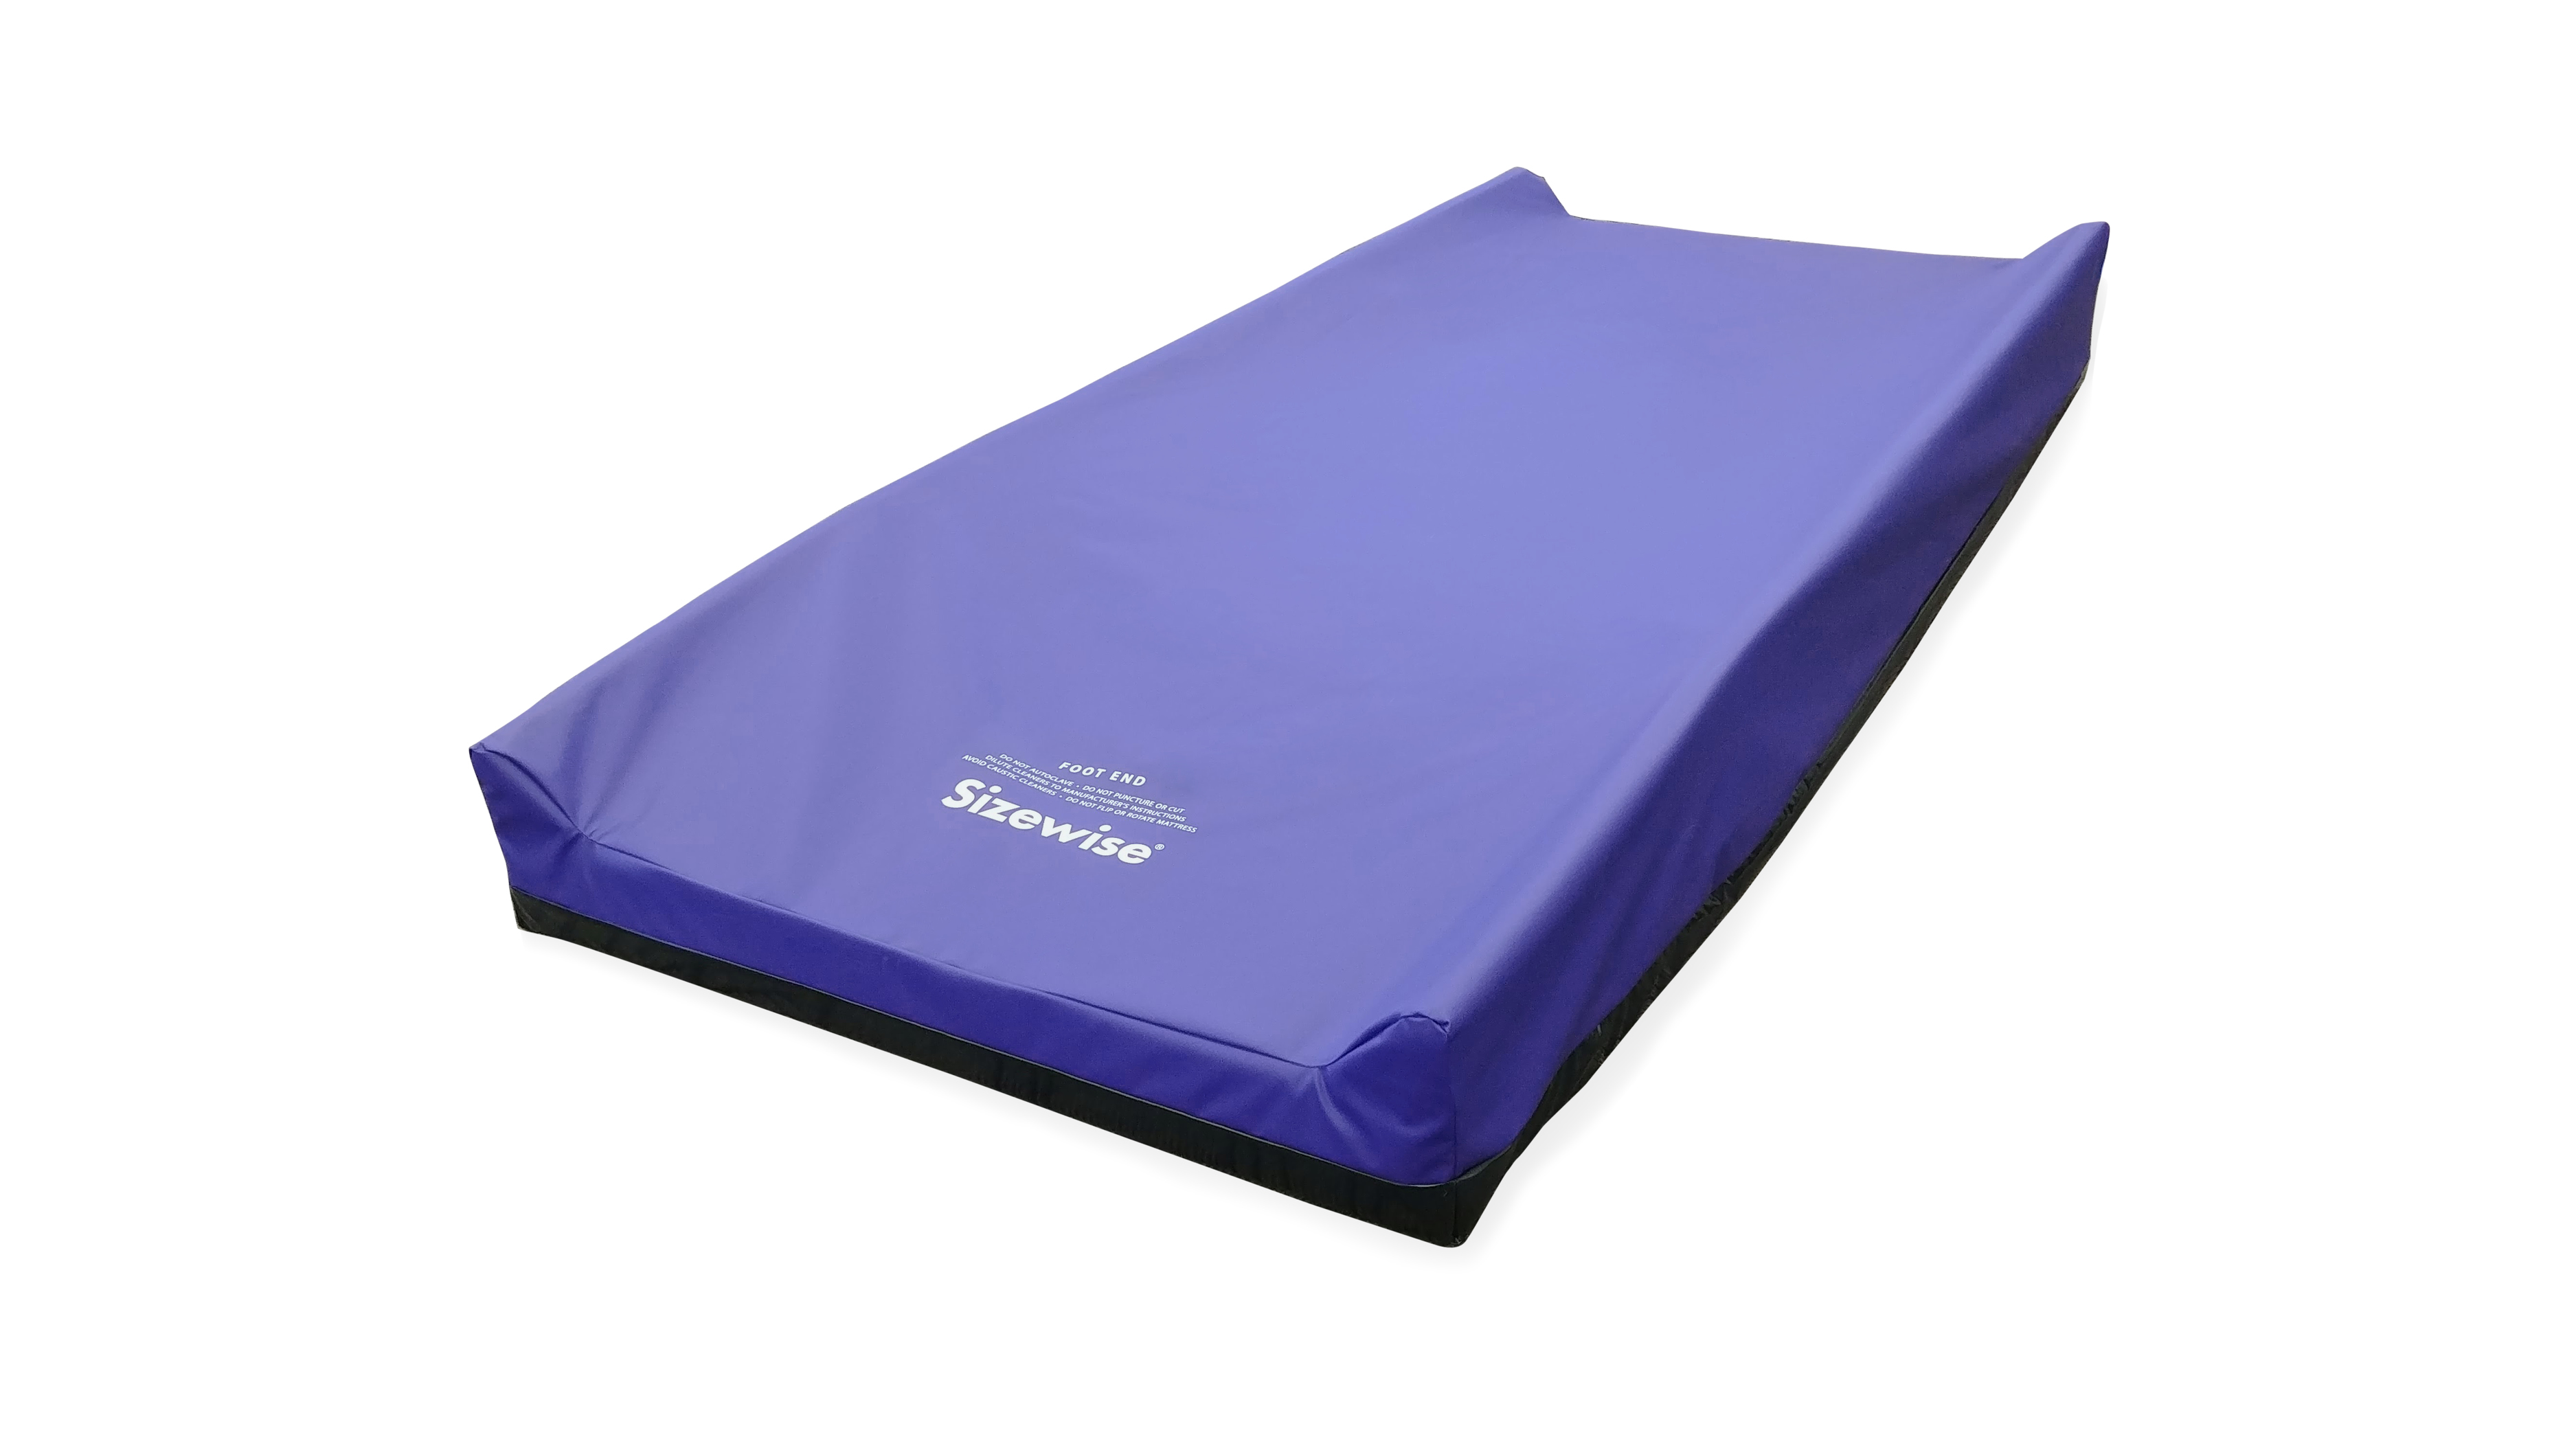 Available Behavioral Health Mattress™ designed with safety in mind